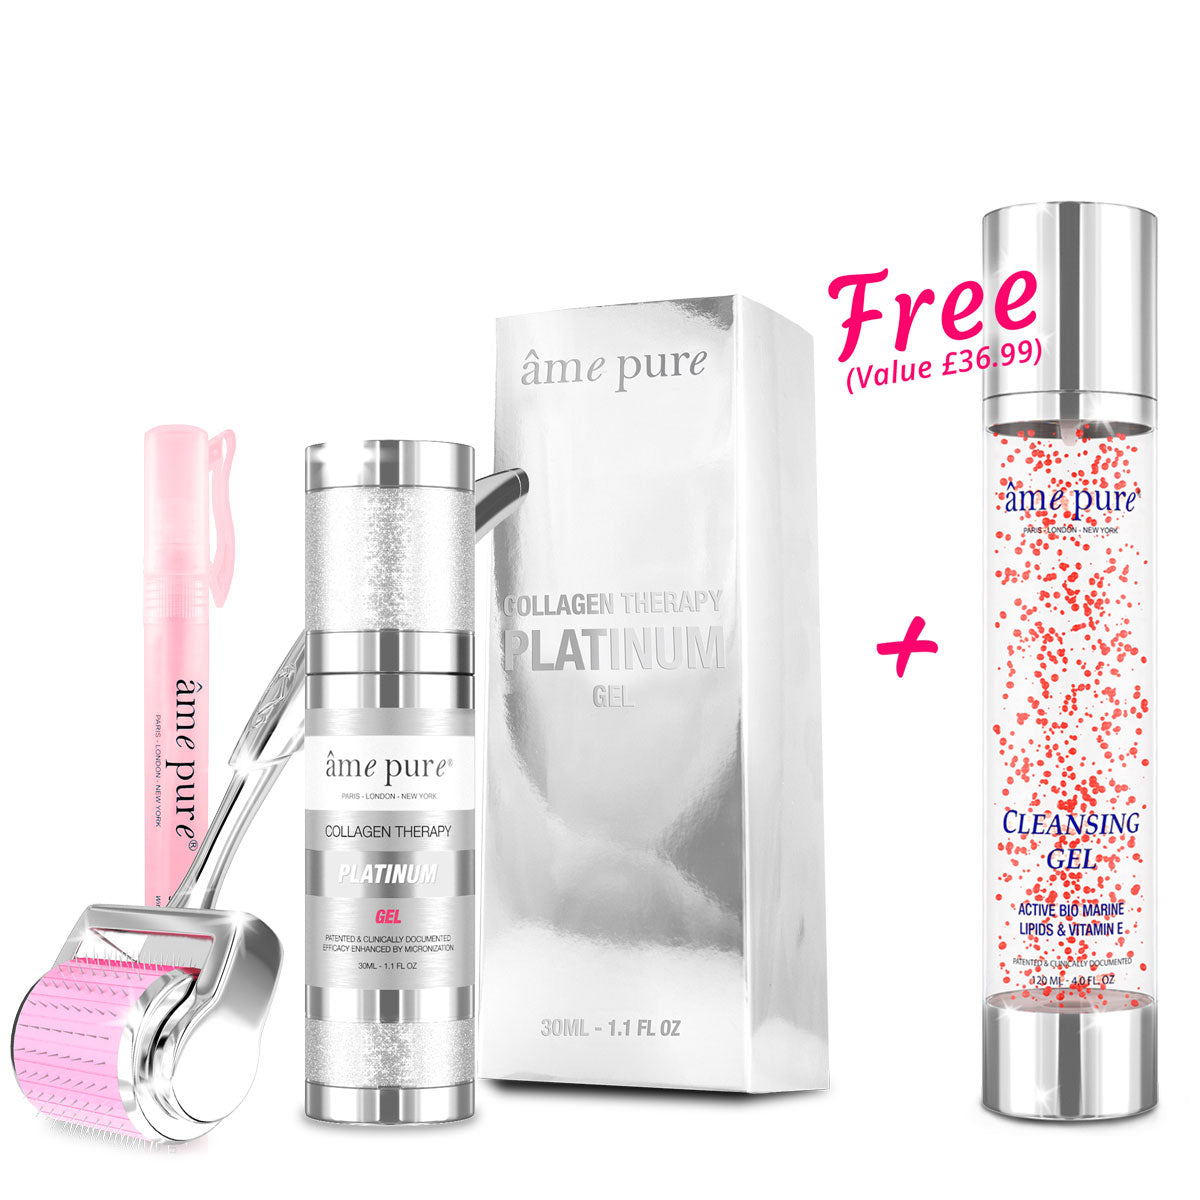 CIT Face Roller PLATINUM + FREE Cleansing Gel